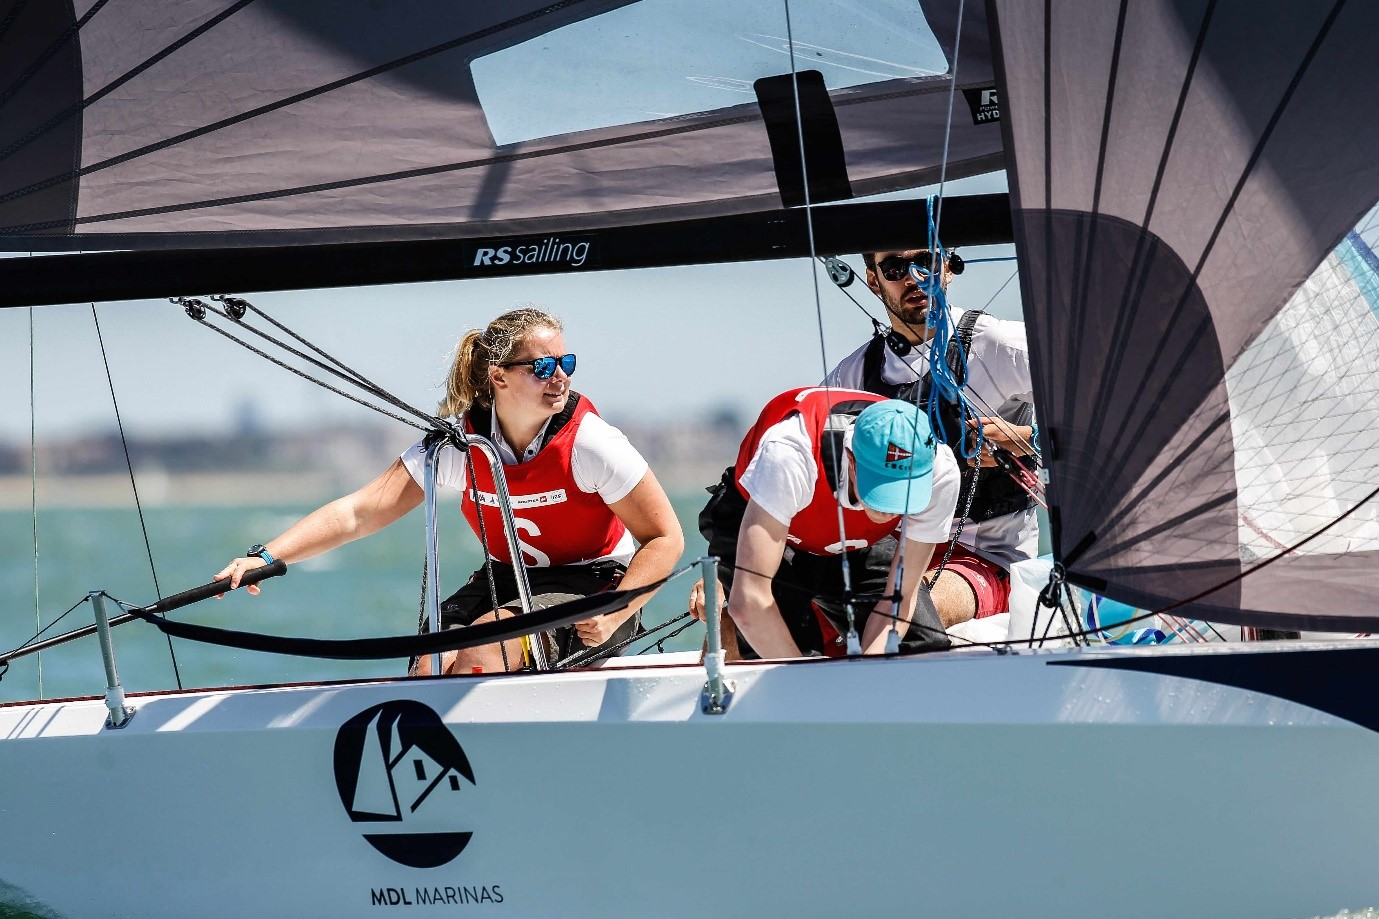 MDL Keelboat RS Sailing